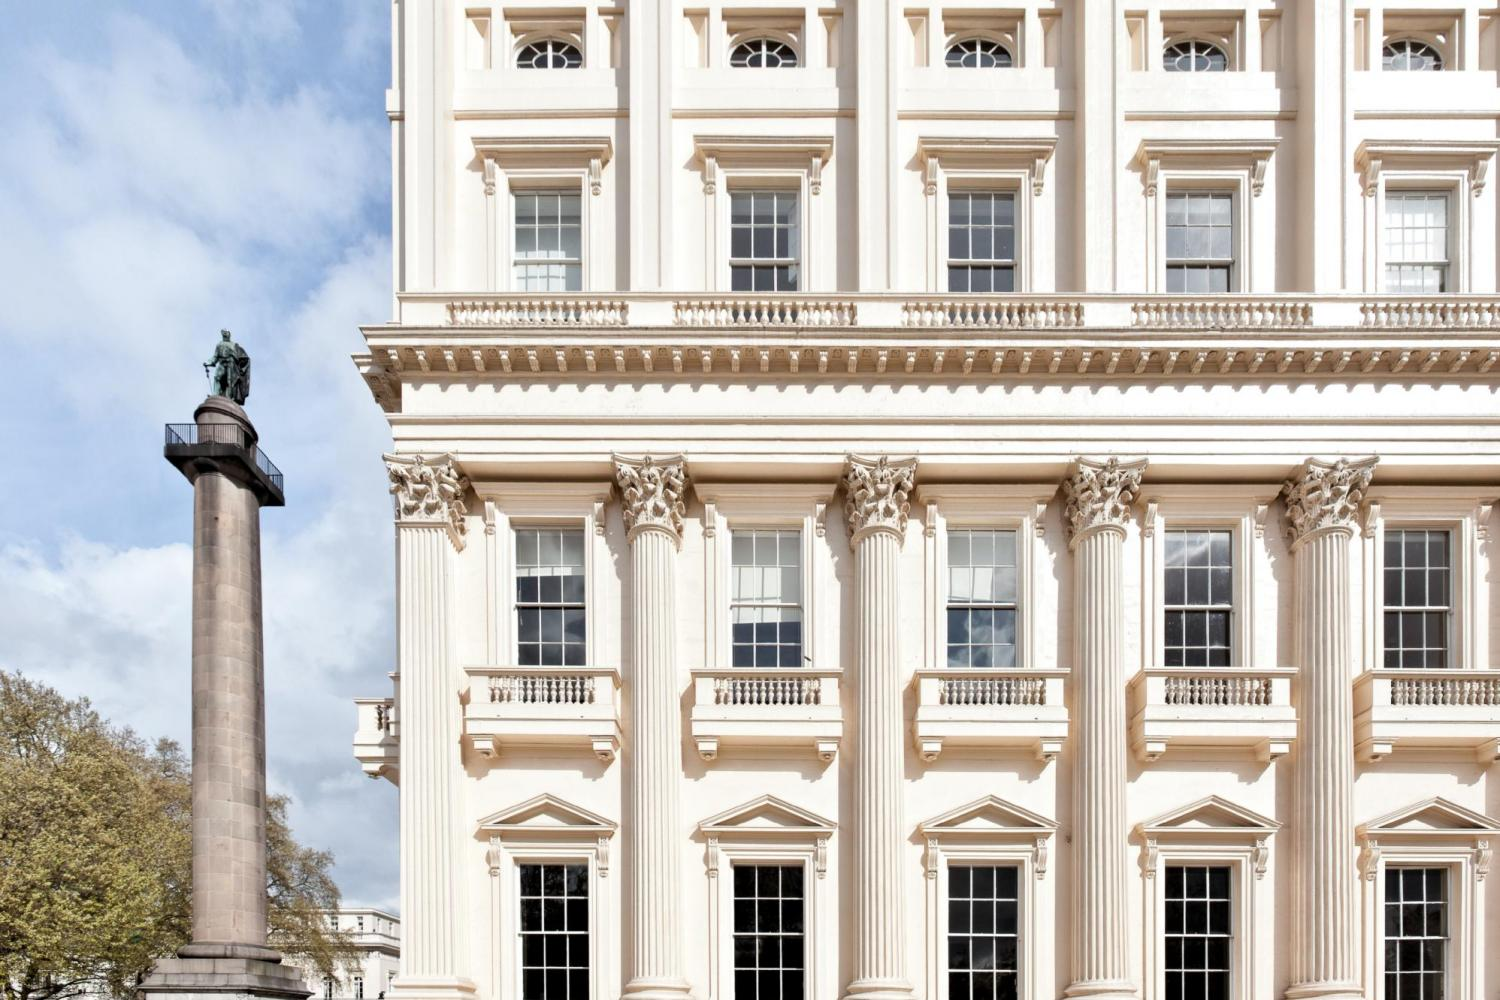 10 11 carlton house terrace a versatile london venue for 18 carlton house terrace